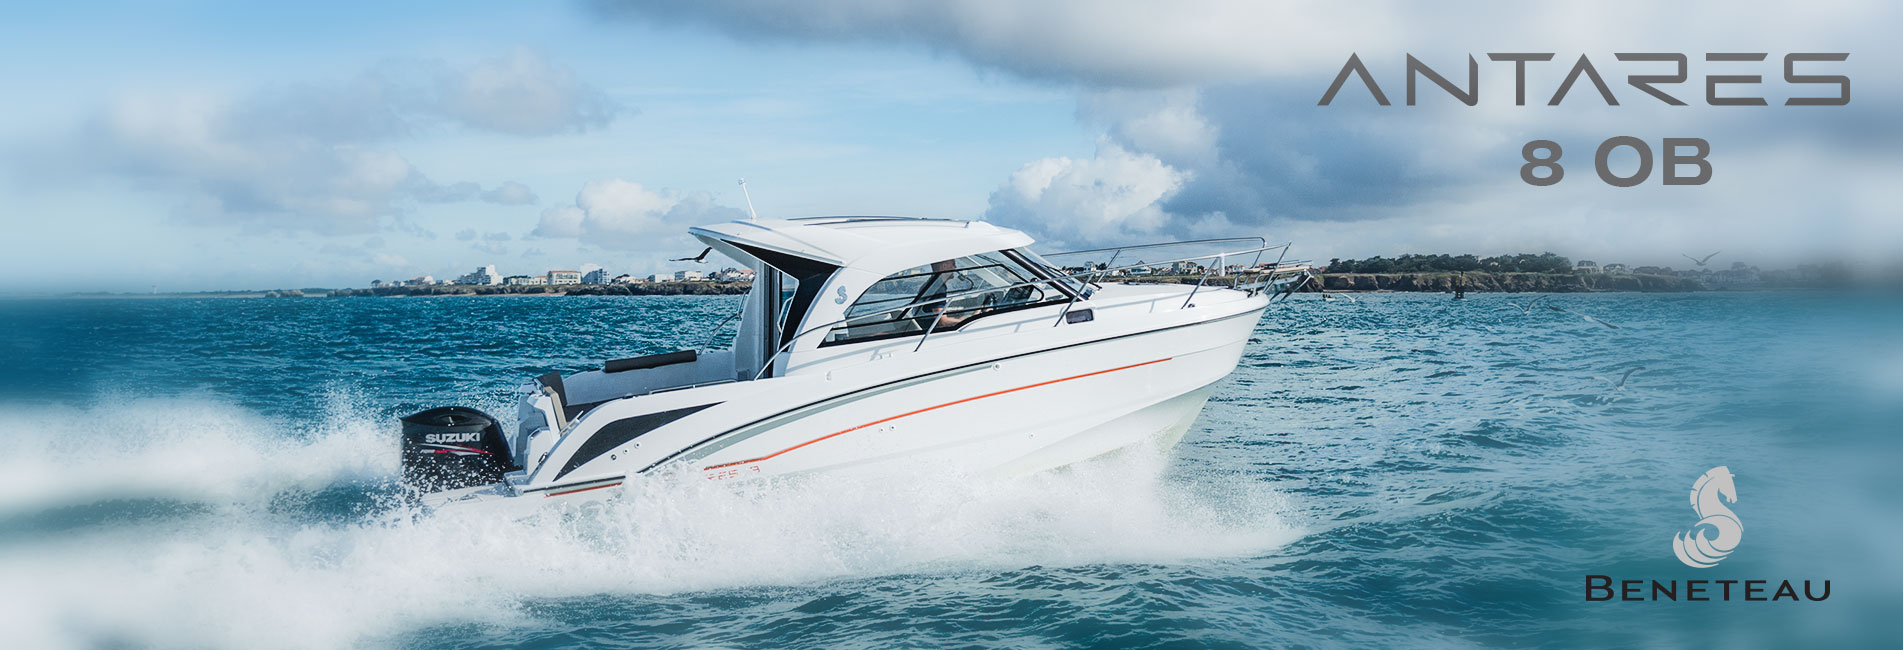 Beneteau Antares 8 OB For Sale In Ireland